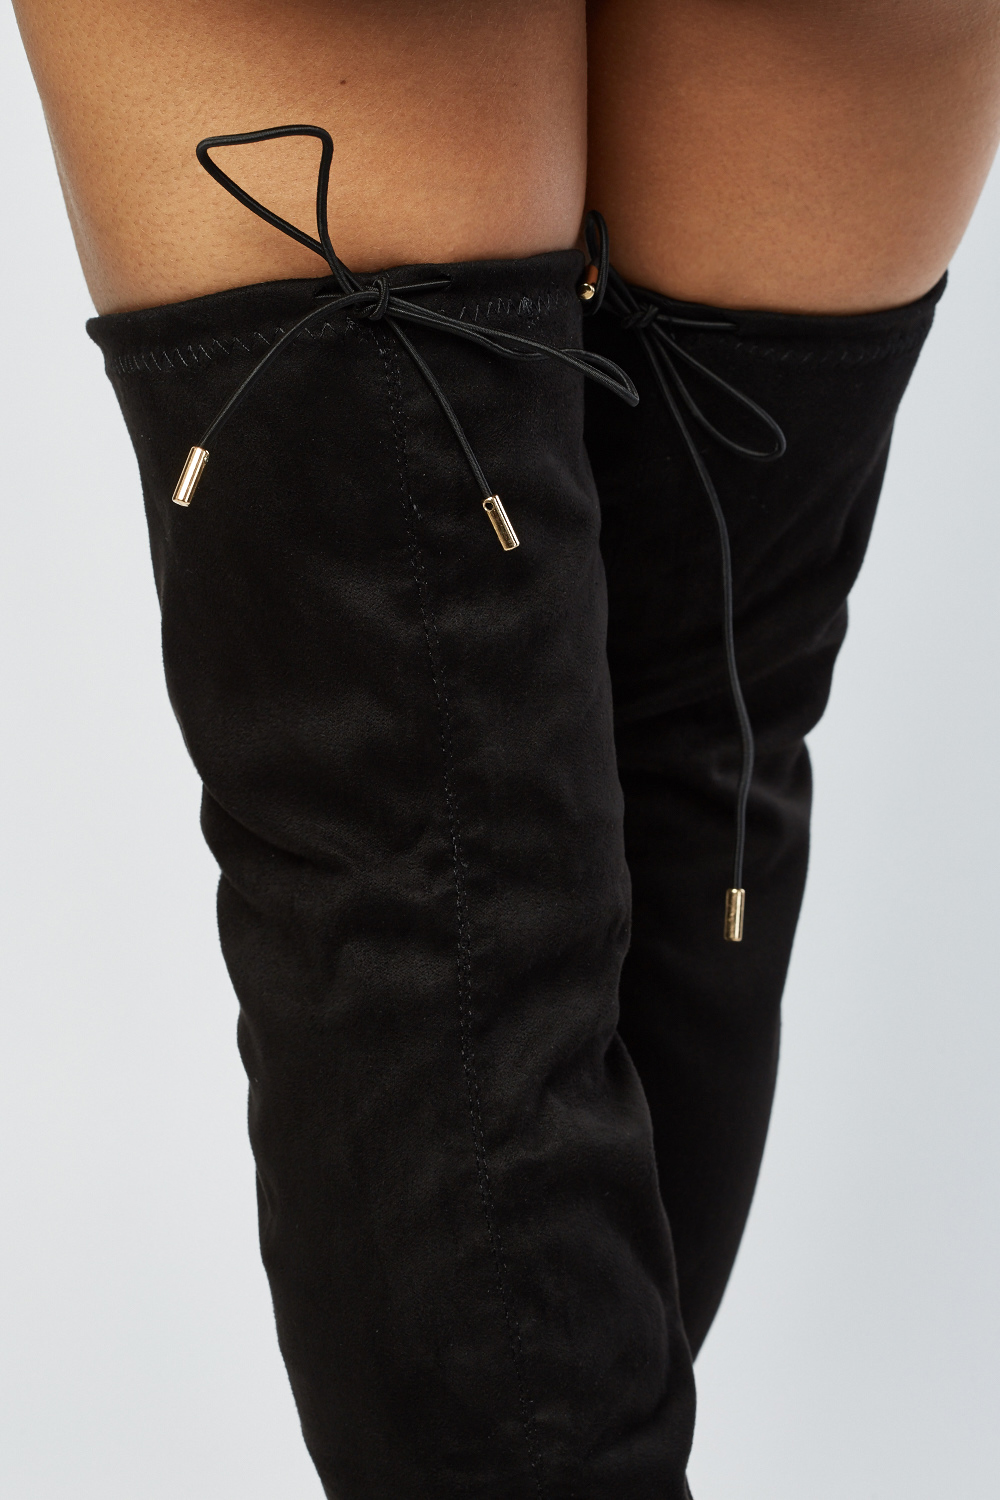 Over The Knee Peep Toe Boots Just $6